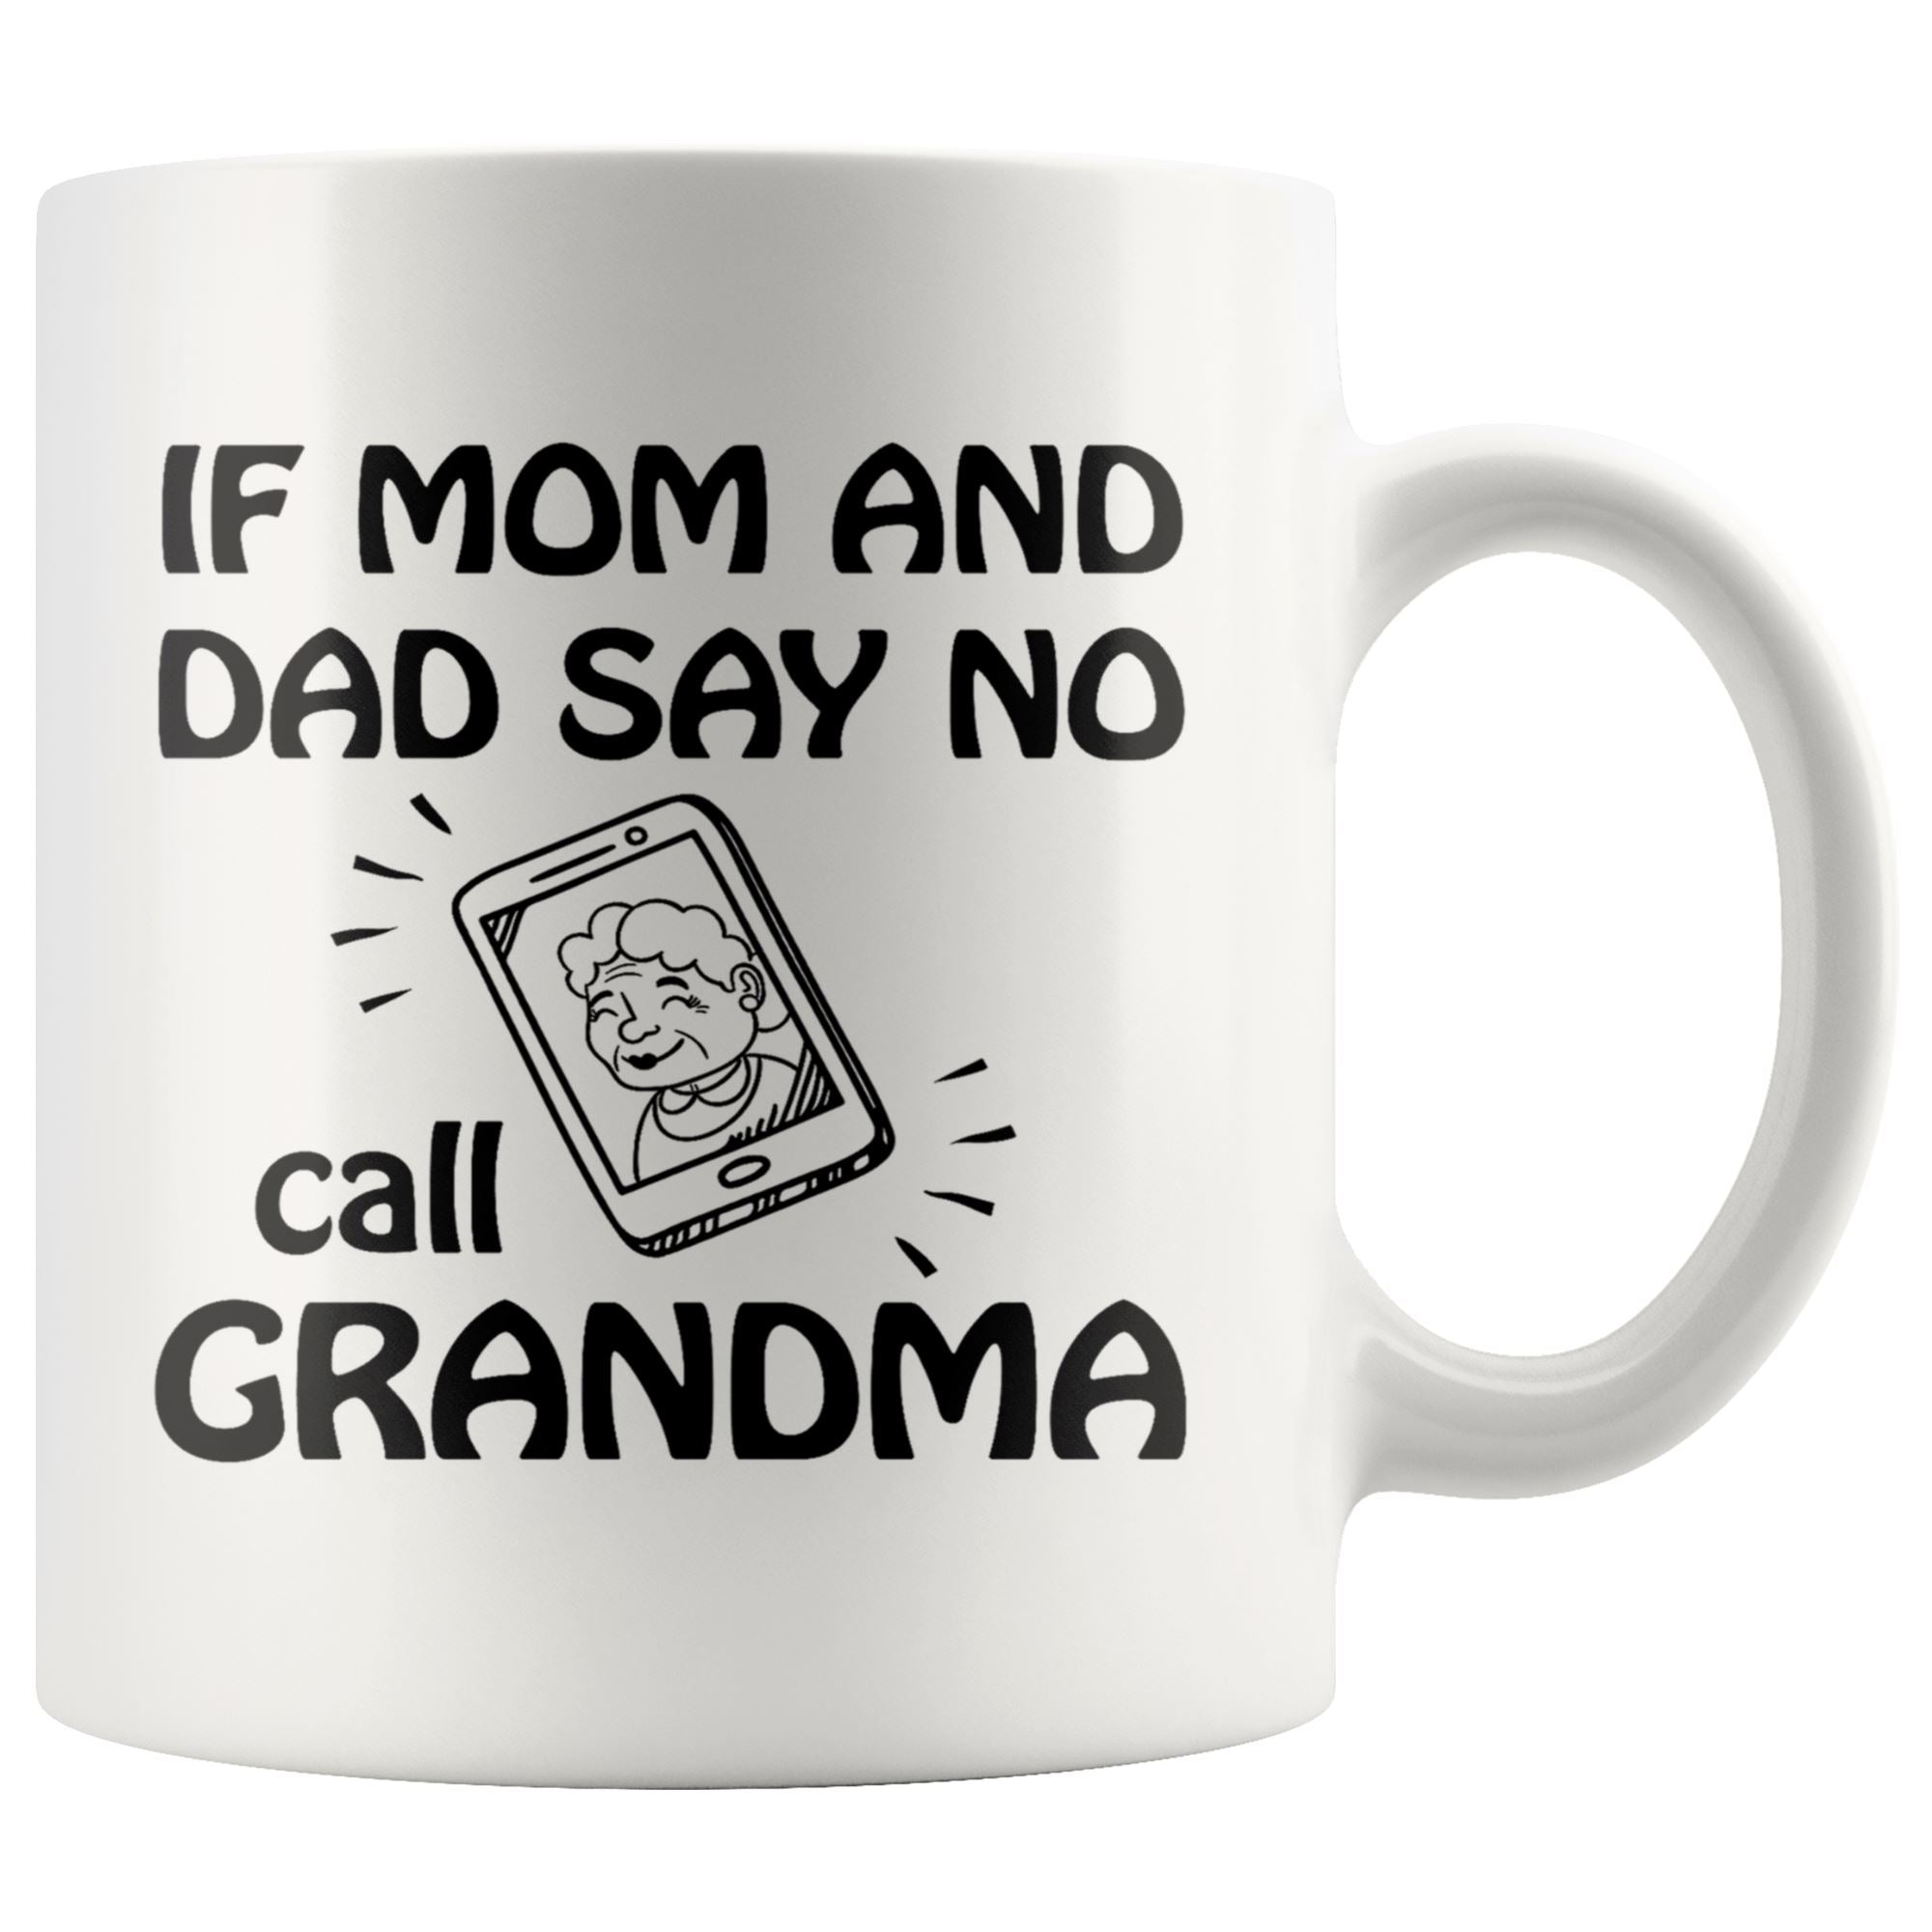 If Mom and dad say No Drinkware teelaunch 11oz Mug